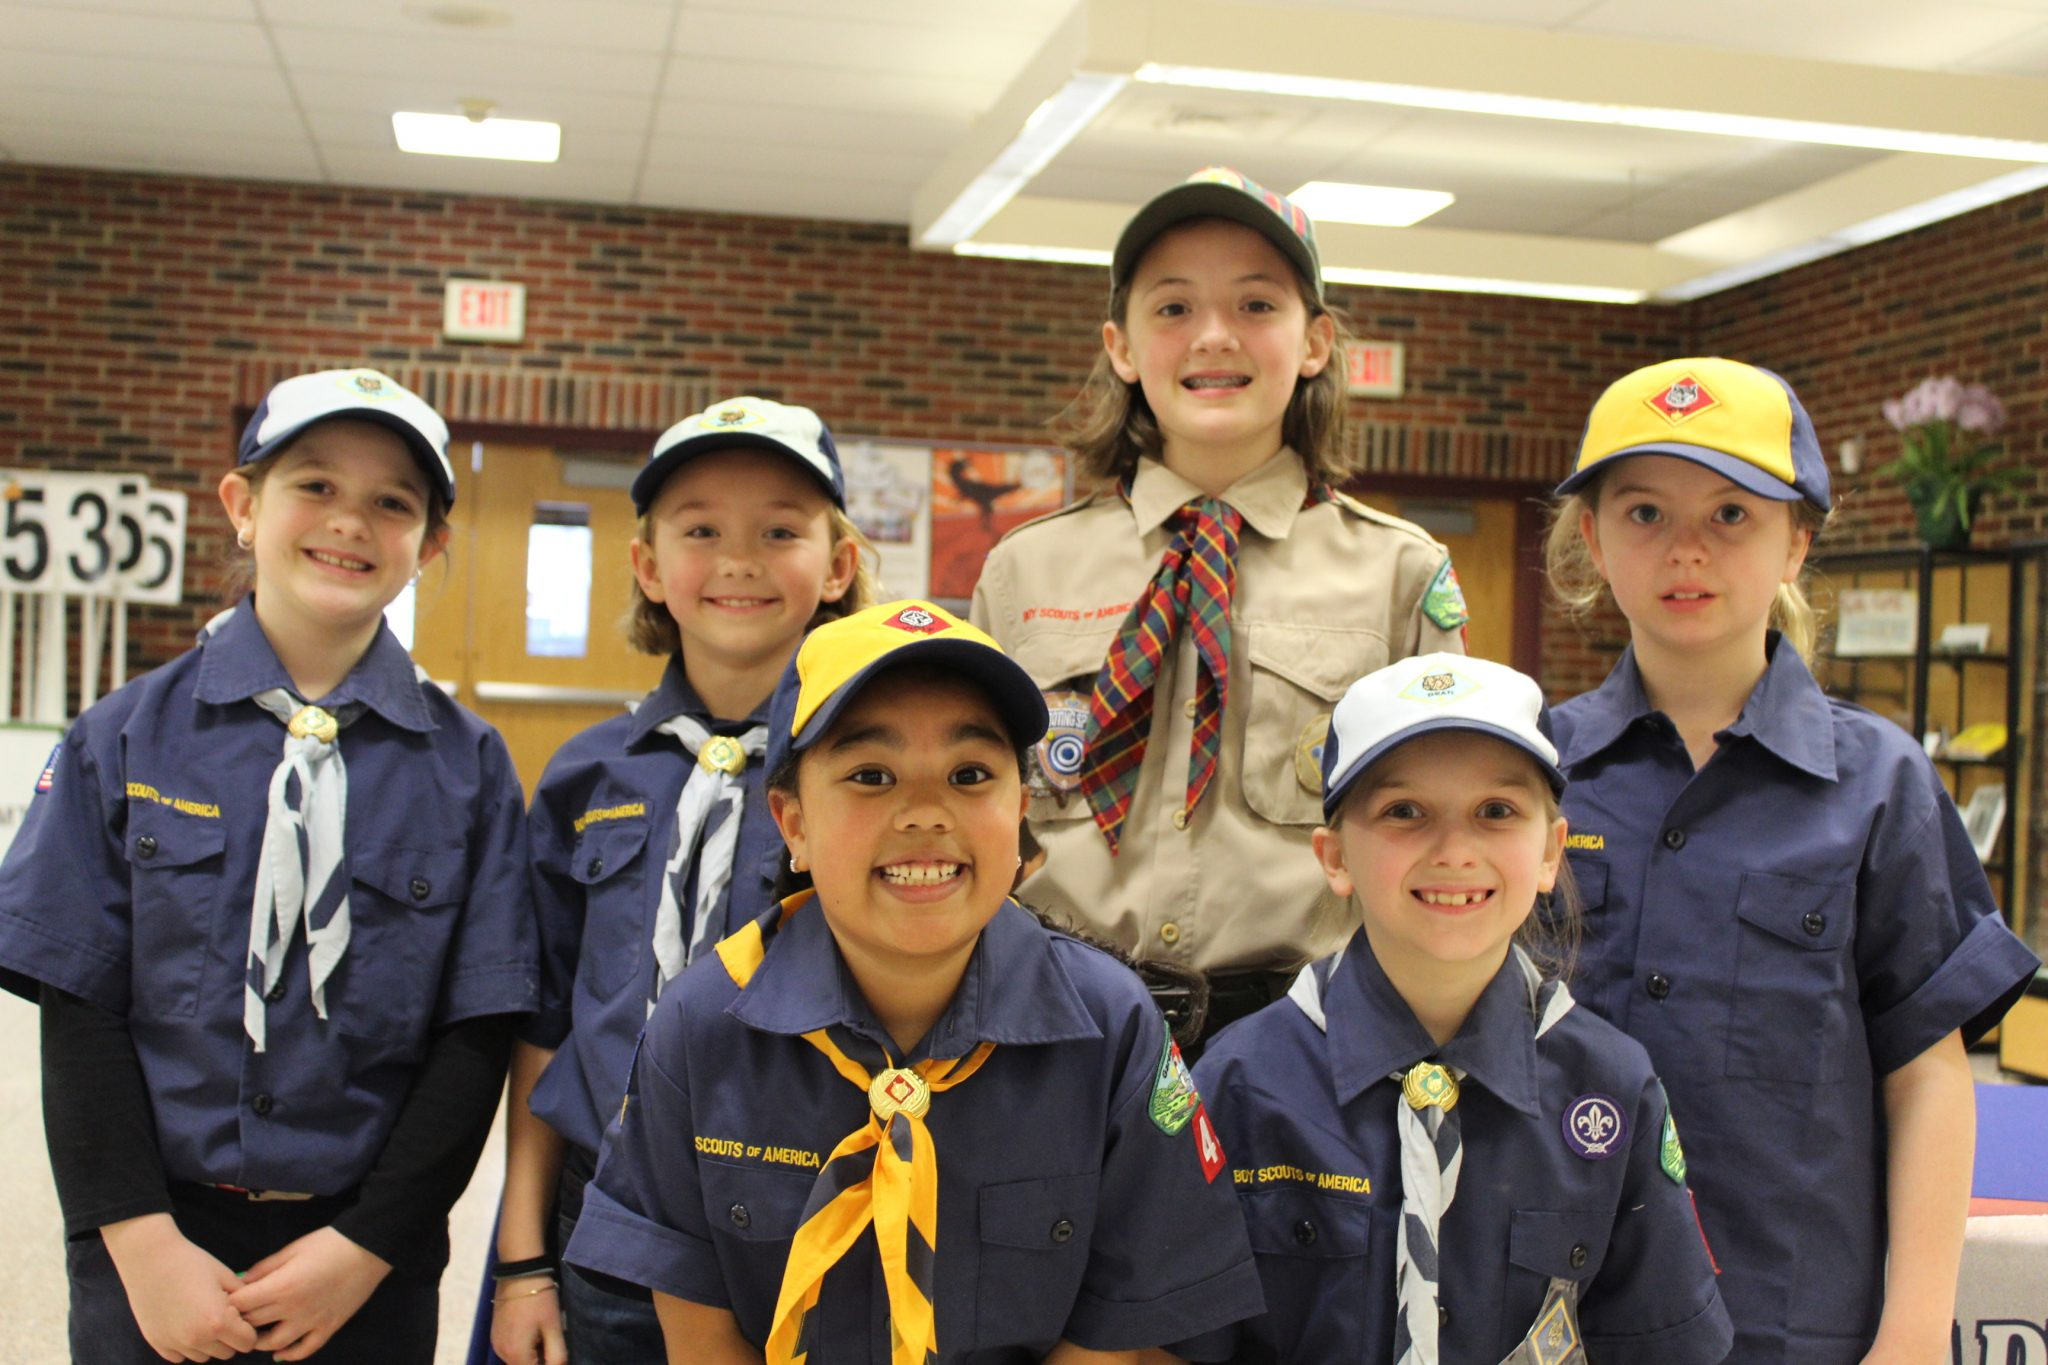 Parents, Scouts content with changes to Boy Scouts - The Sun